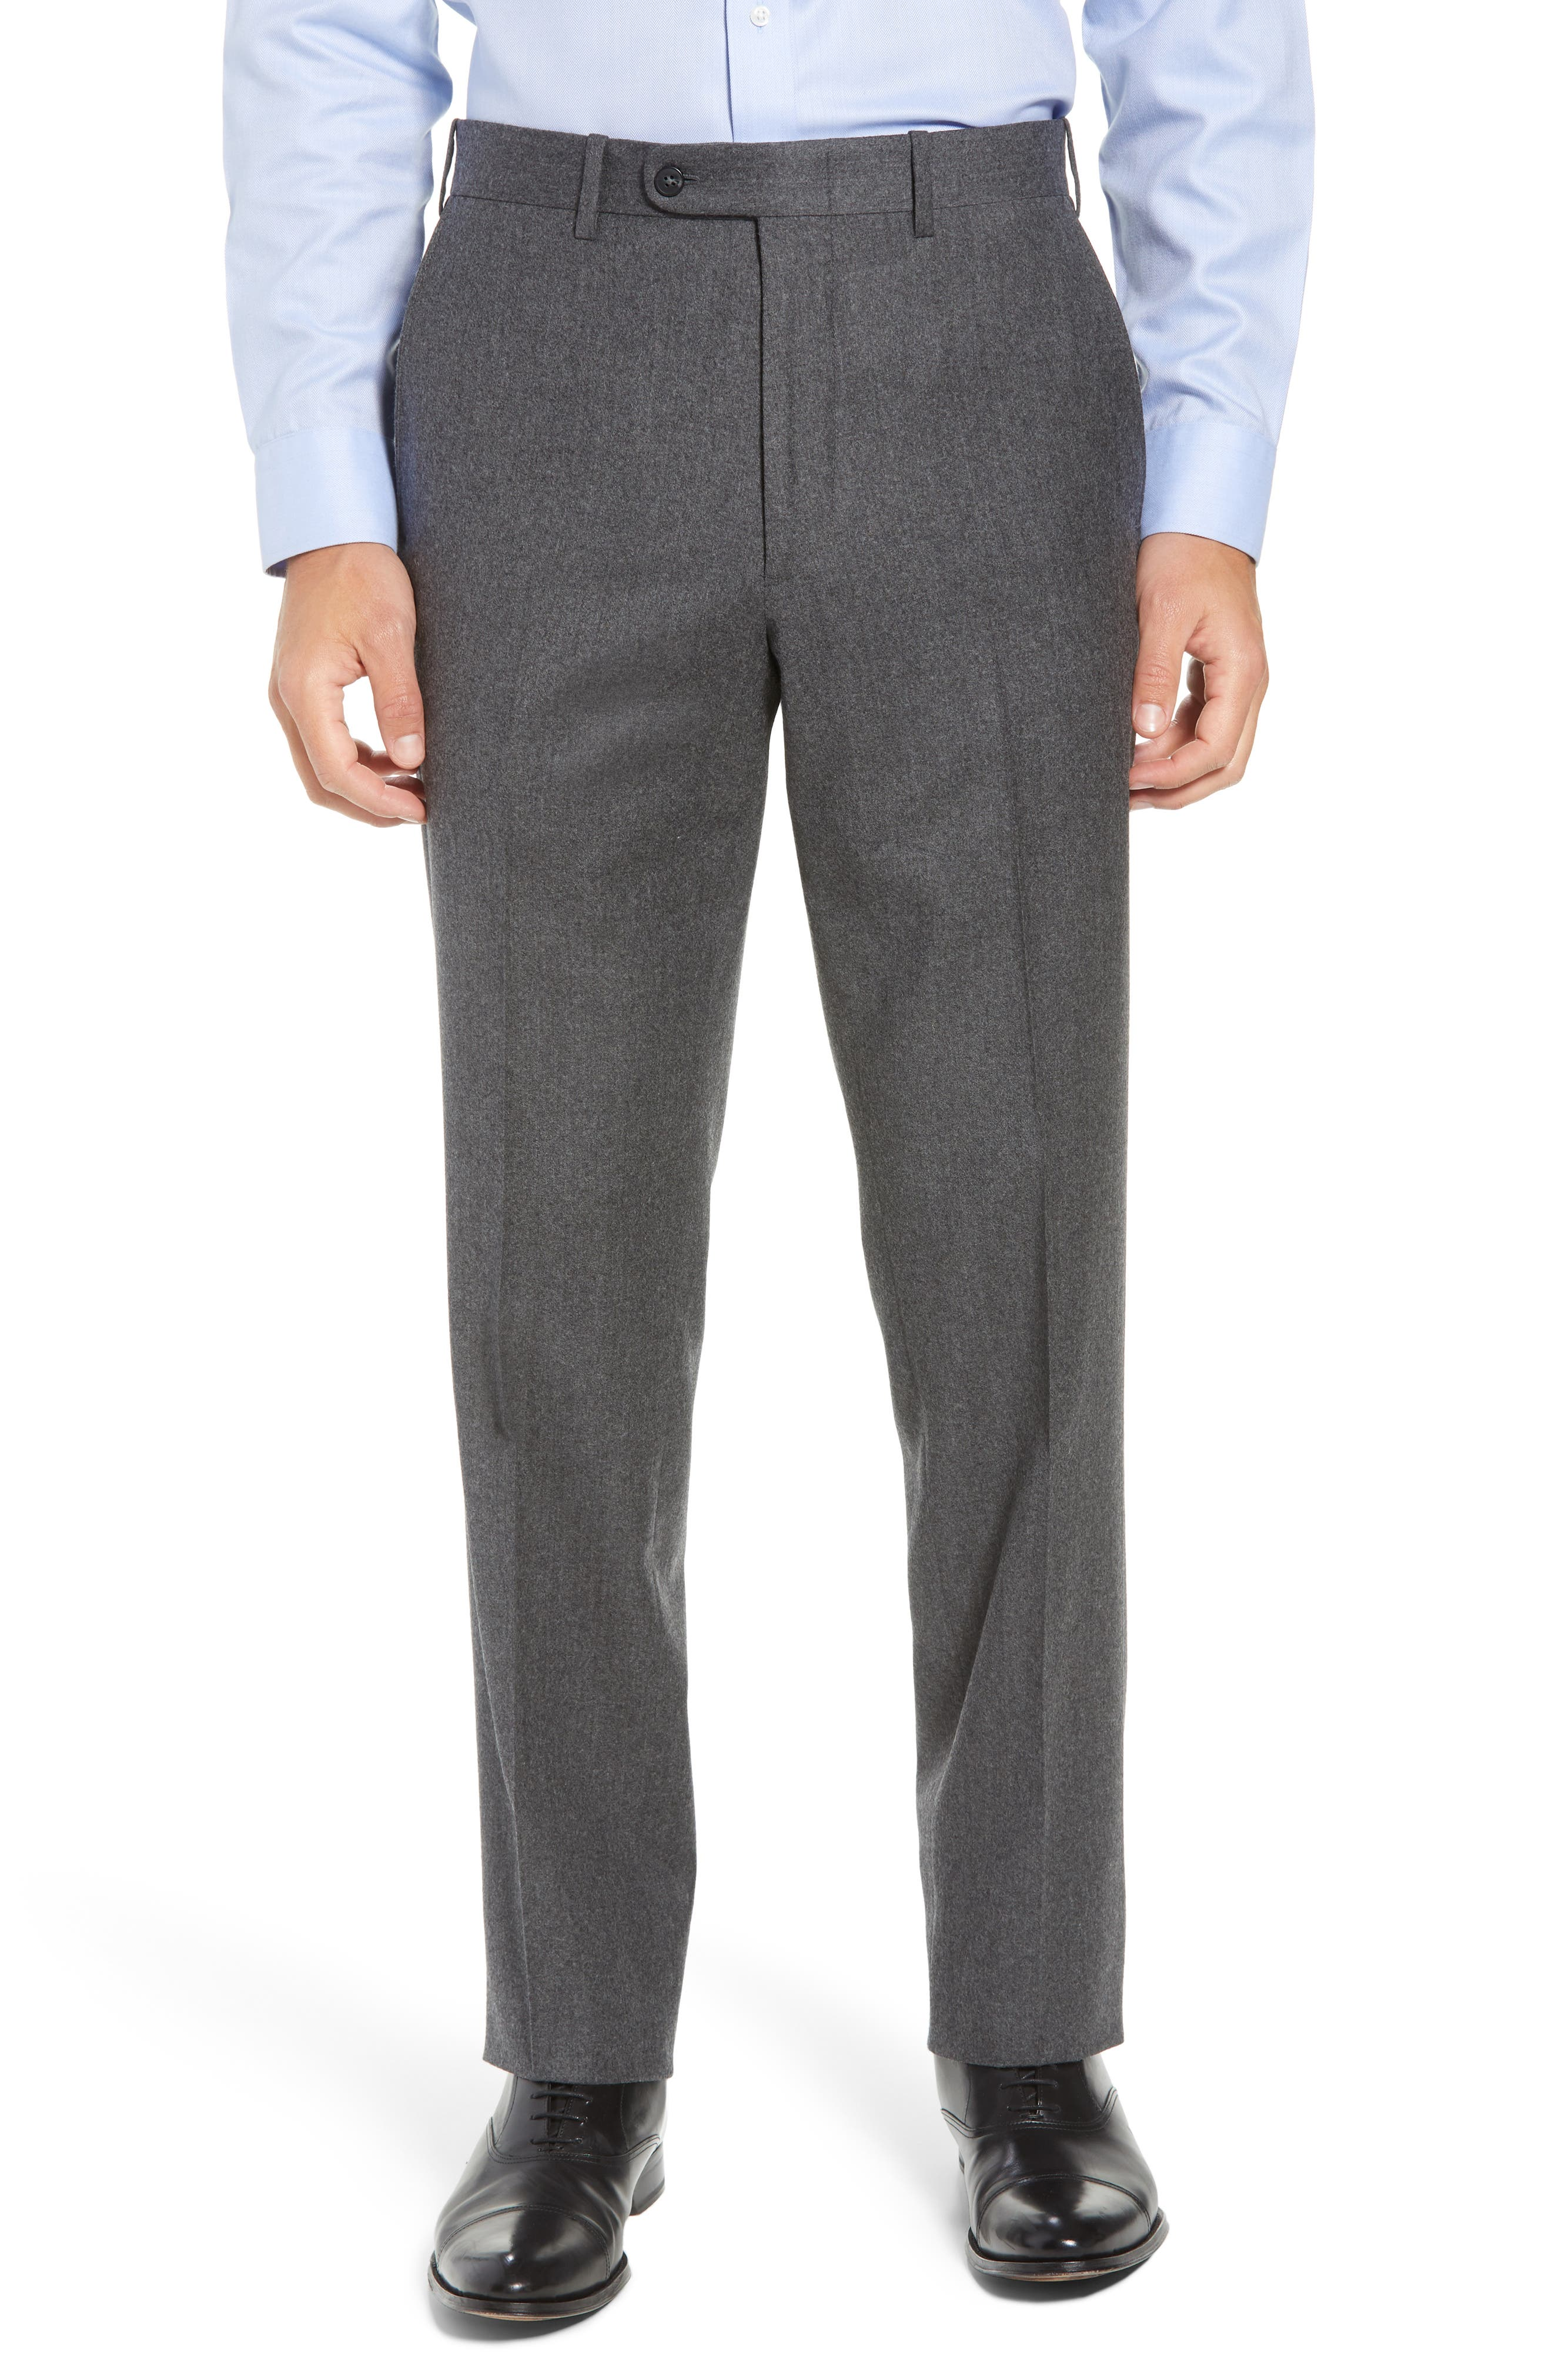 Torino Traditional Fit Flat Front Solid Wool & Cashmere Trousers,                             Main thumbnail 1, color,                             MID GREY